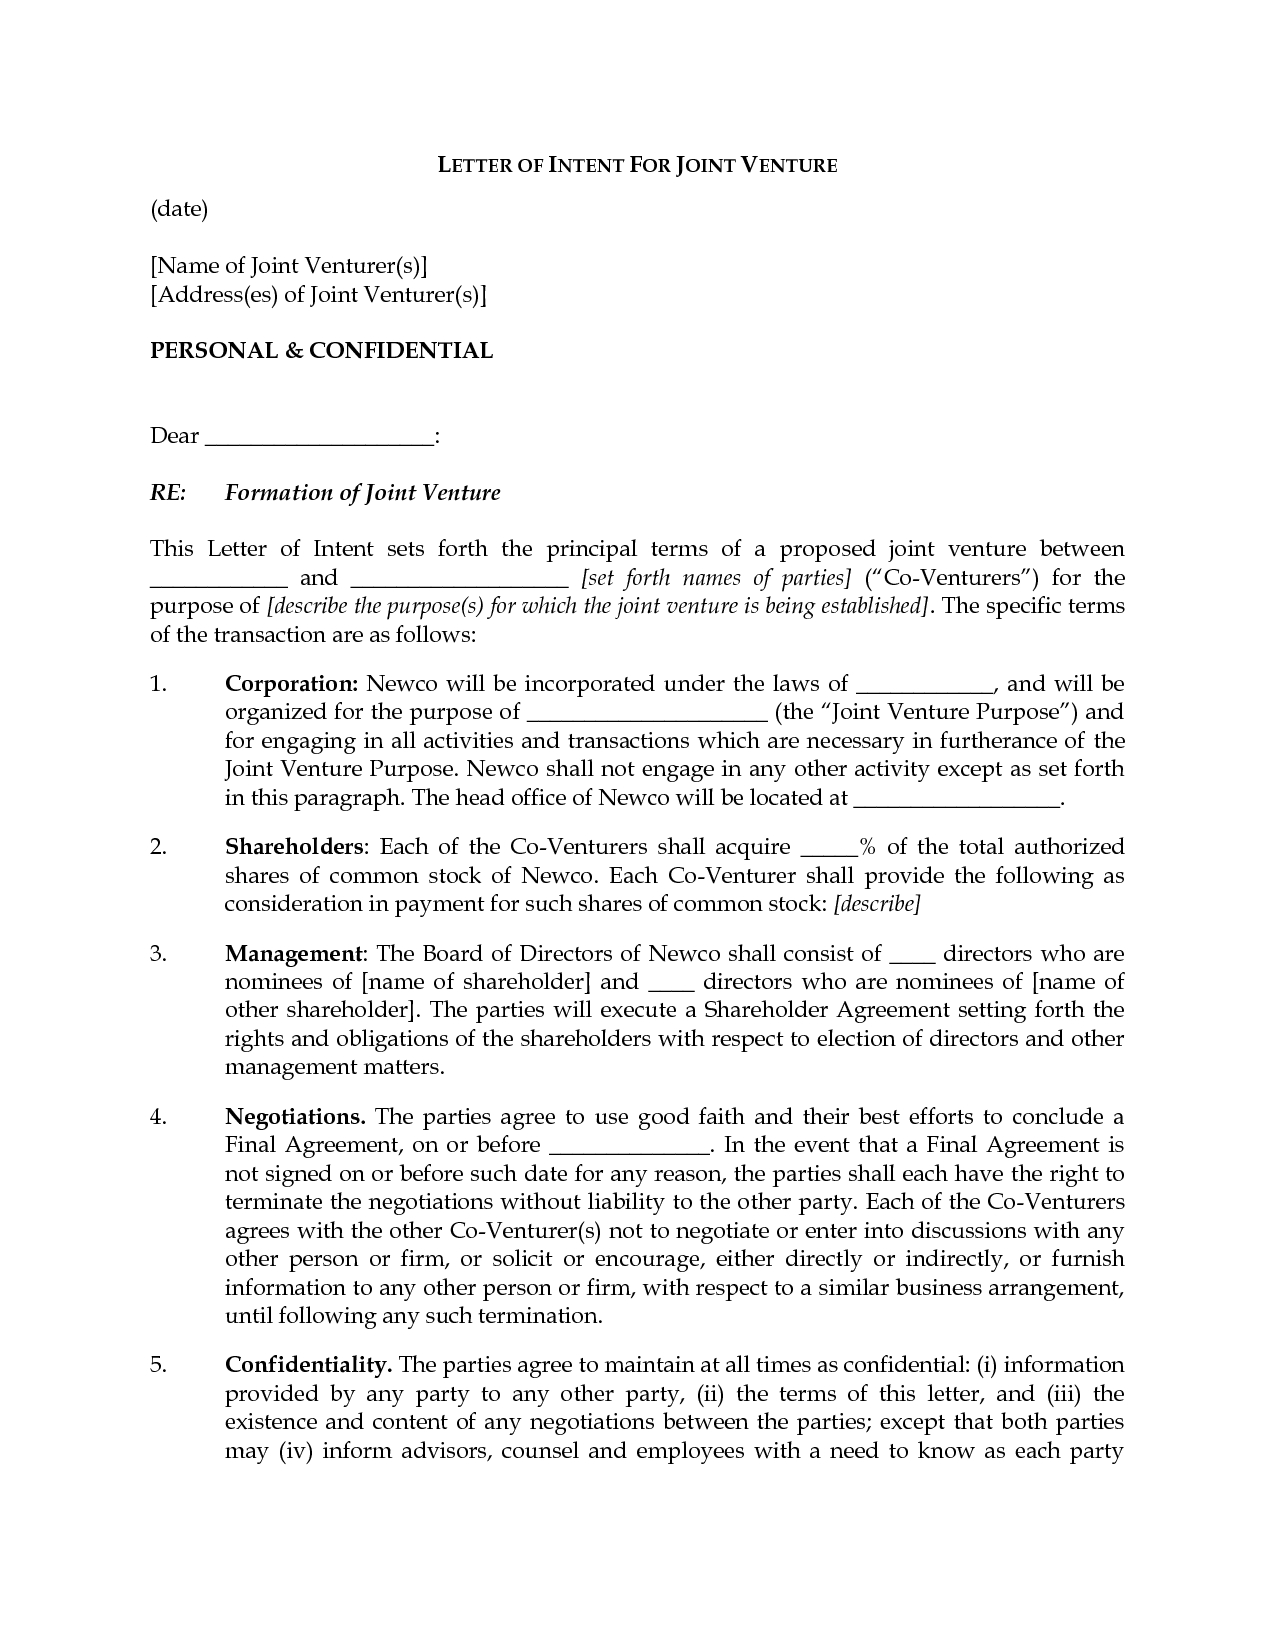 Free Joint Venture Proposal Letter Template - Businessr Intentrs Venture Melvillehighschool Image Ideas for